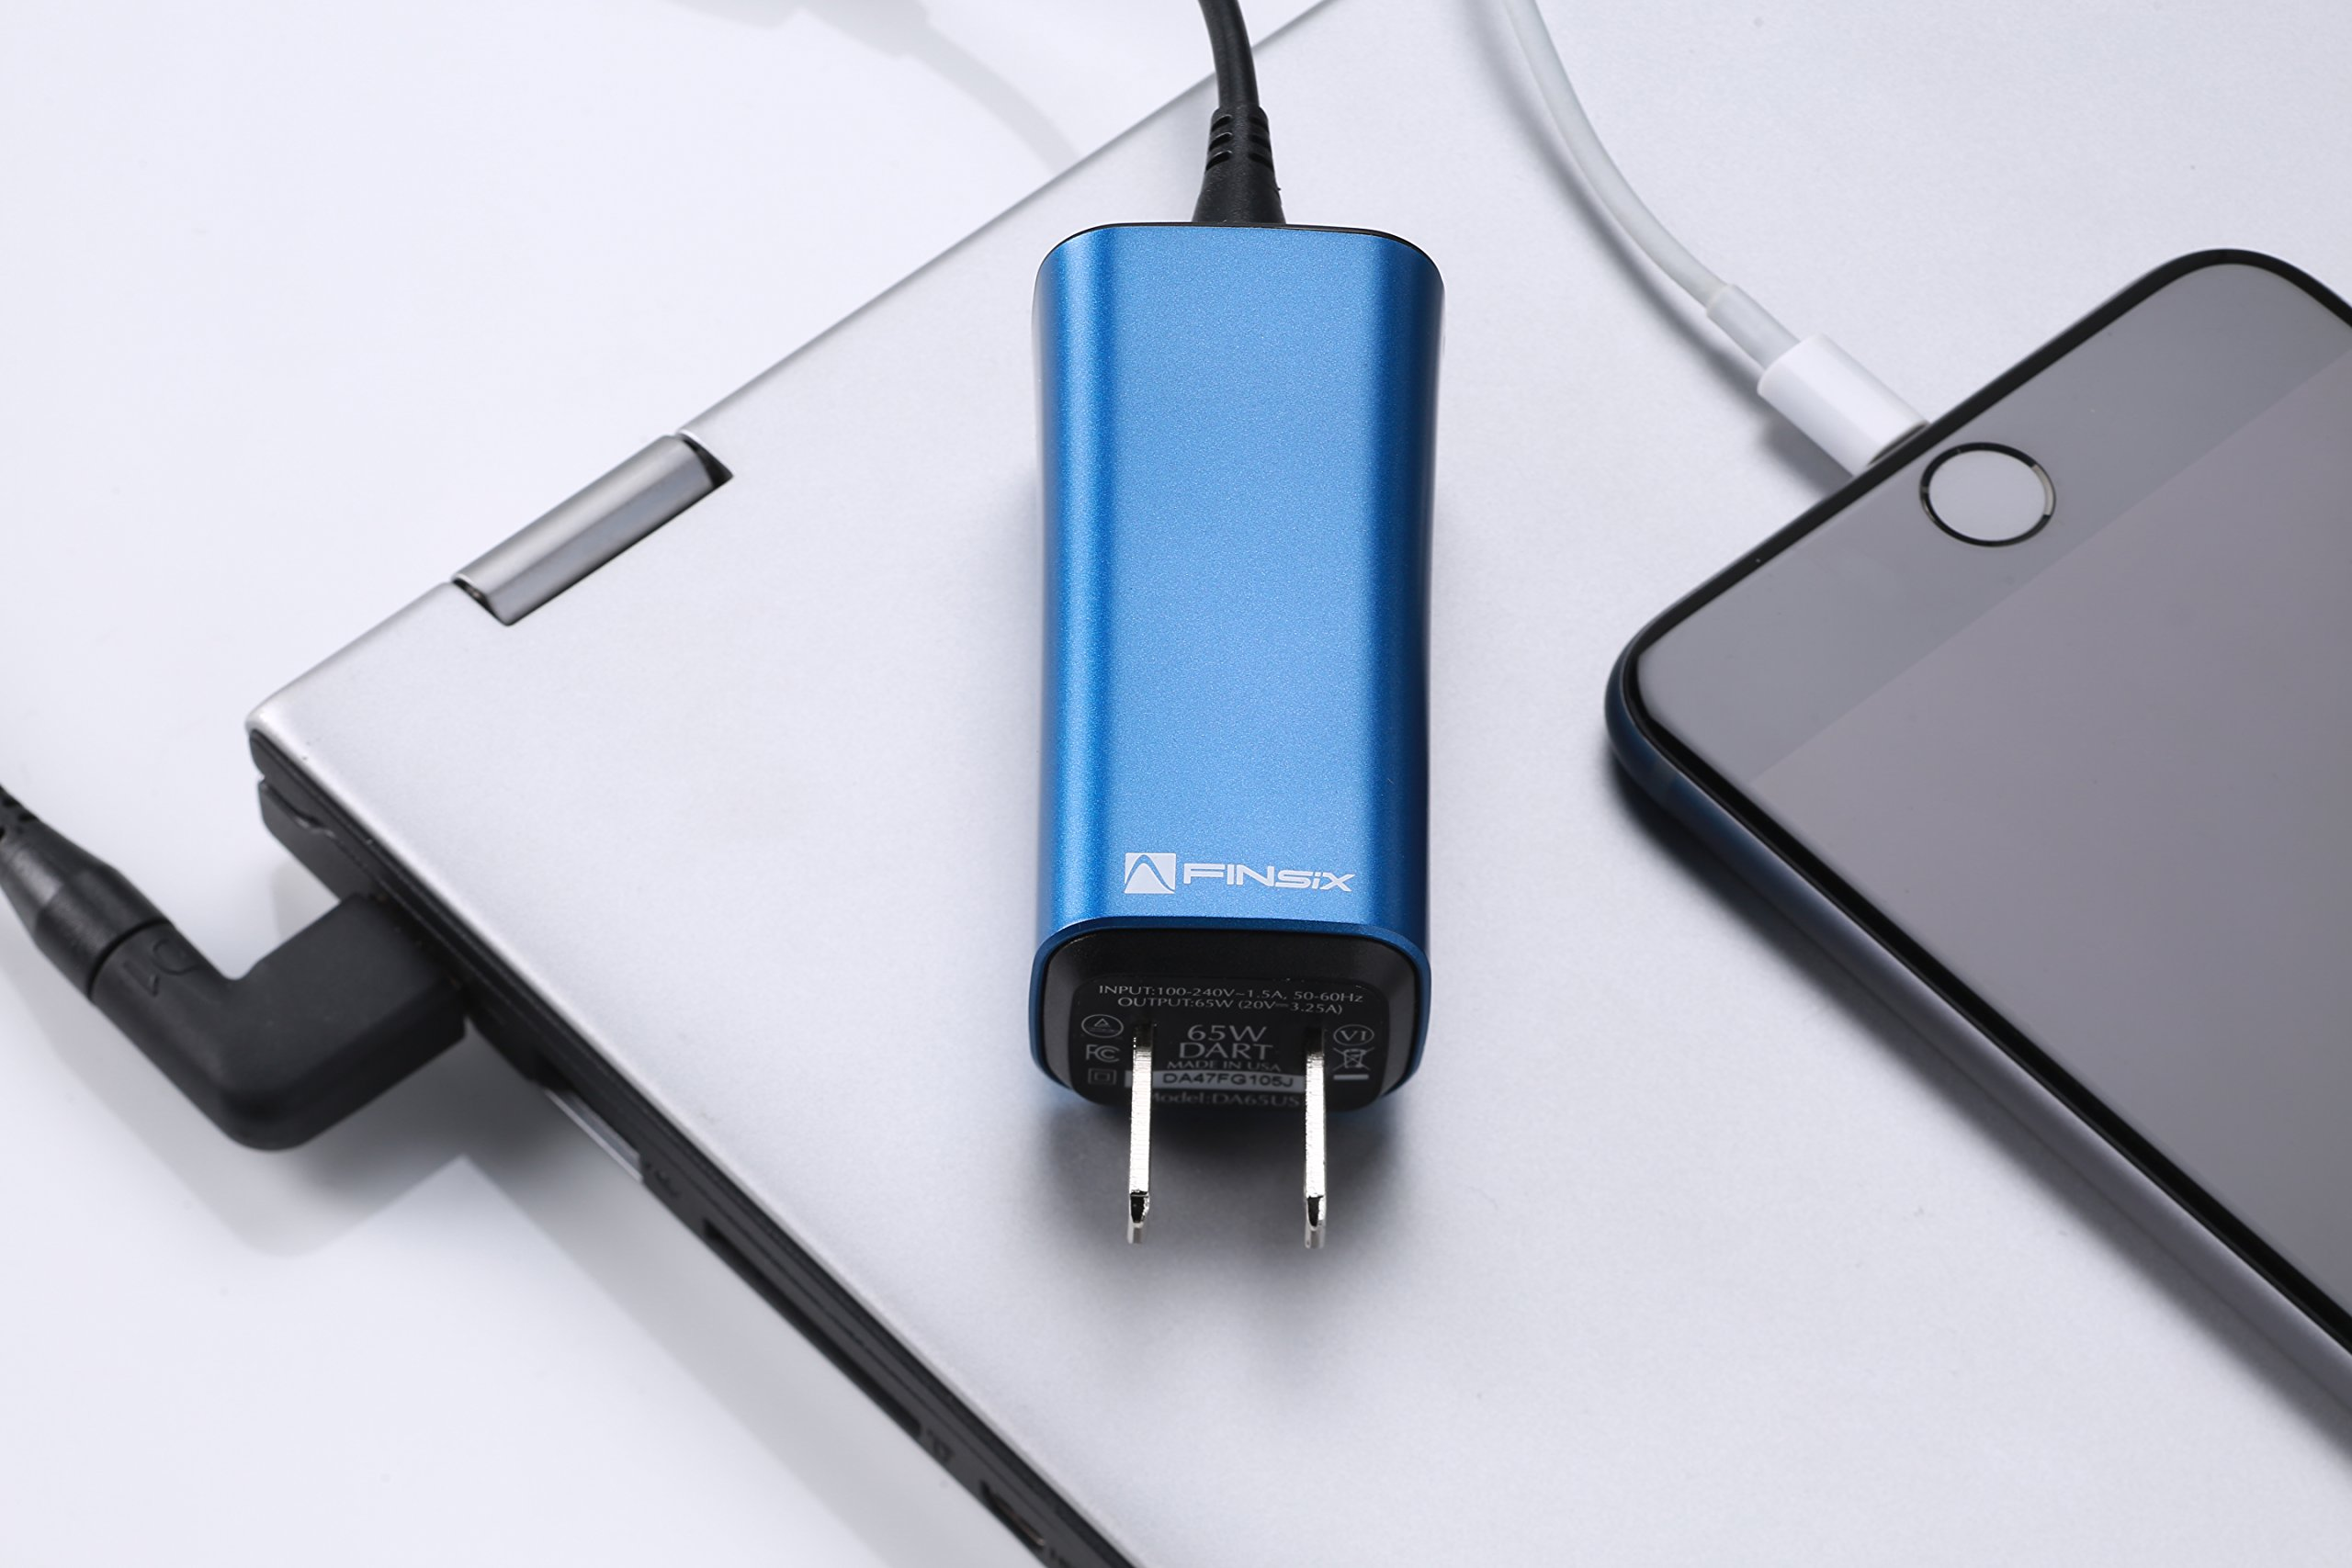 FINsix Dart 65W Smallest Lightweight Portable PC Laptop Charger plus USB devices | Fits in Pocket | Blue | Integrated 2.1A USB Port for Acer Asus Dell HP Lenovo Samsung Android iPhone iPad by FINsix